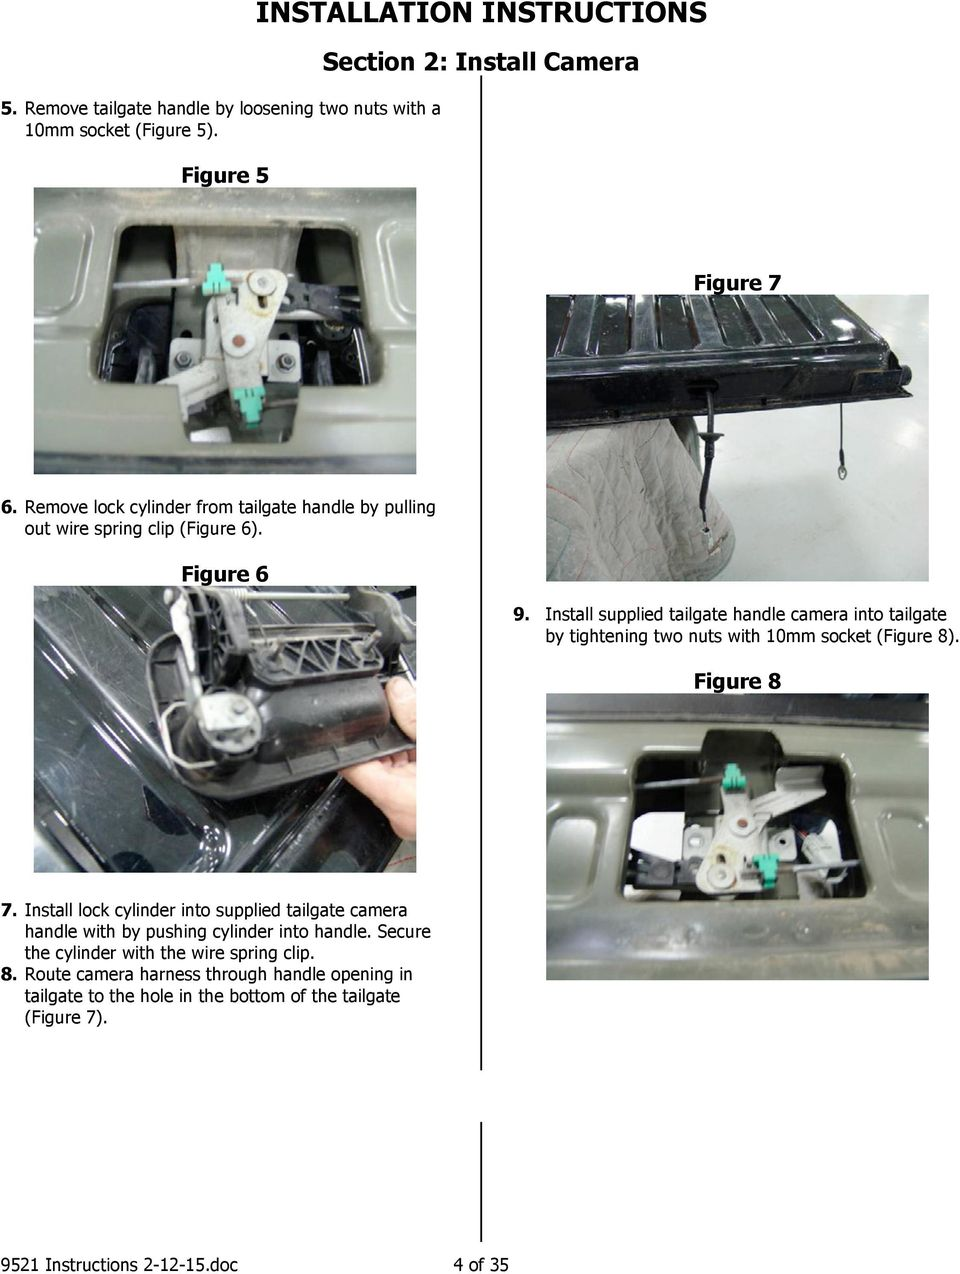 Installation Instructions Pdf How To Install A Trailer Wiring Harness On Volvo Xc90 Car Mods Supplied Tailgate Handle Camera Into By Tightening Two Nuts With 10mm Socket Figure